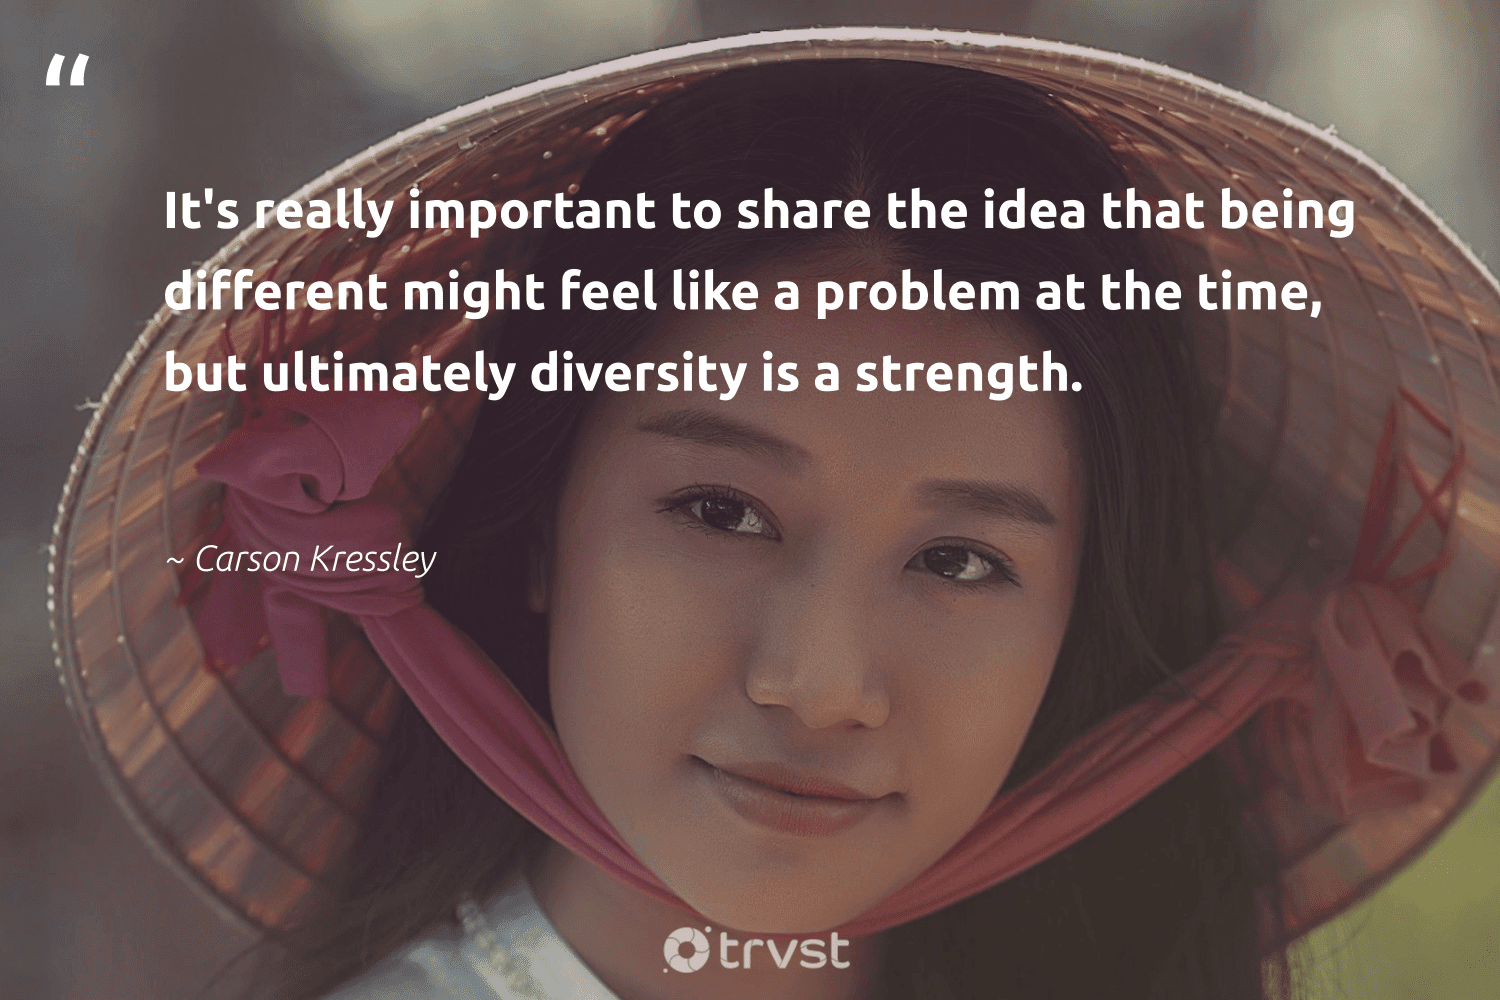 """""""It's really important to share the idea that being different might feel like a problem at the time, but ultimately diversity is a strength.""""  - Carson Kressley #trvst #quotes #diversity #discrimination #representationmatters #socialgood #giveback #changetheworld #inclusion #bethechange #weareallone #dotherightthing"""